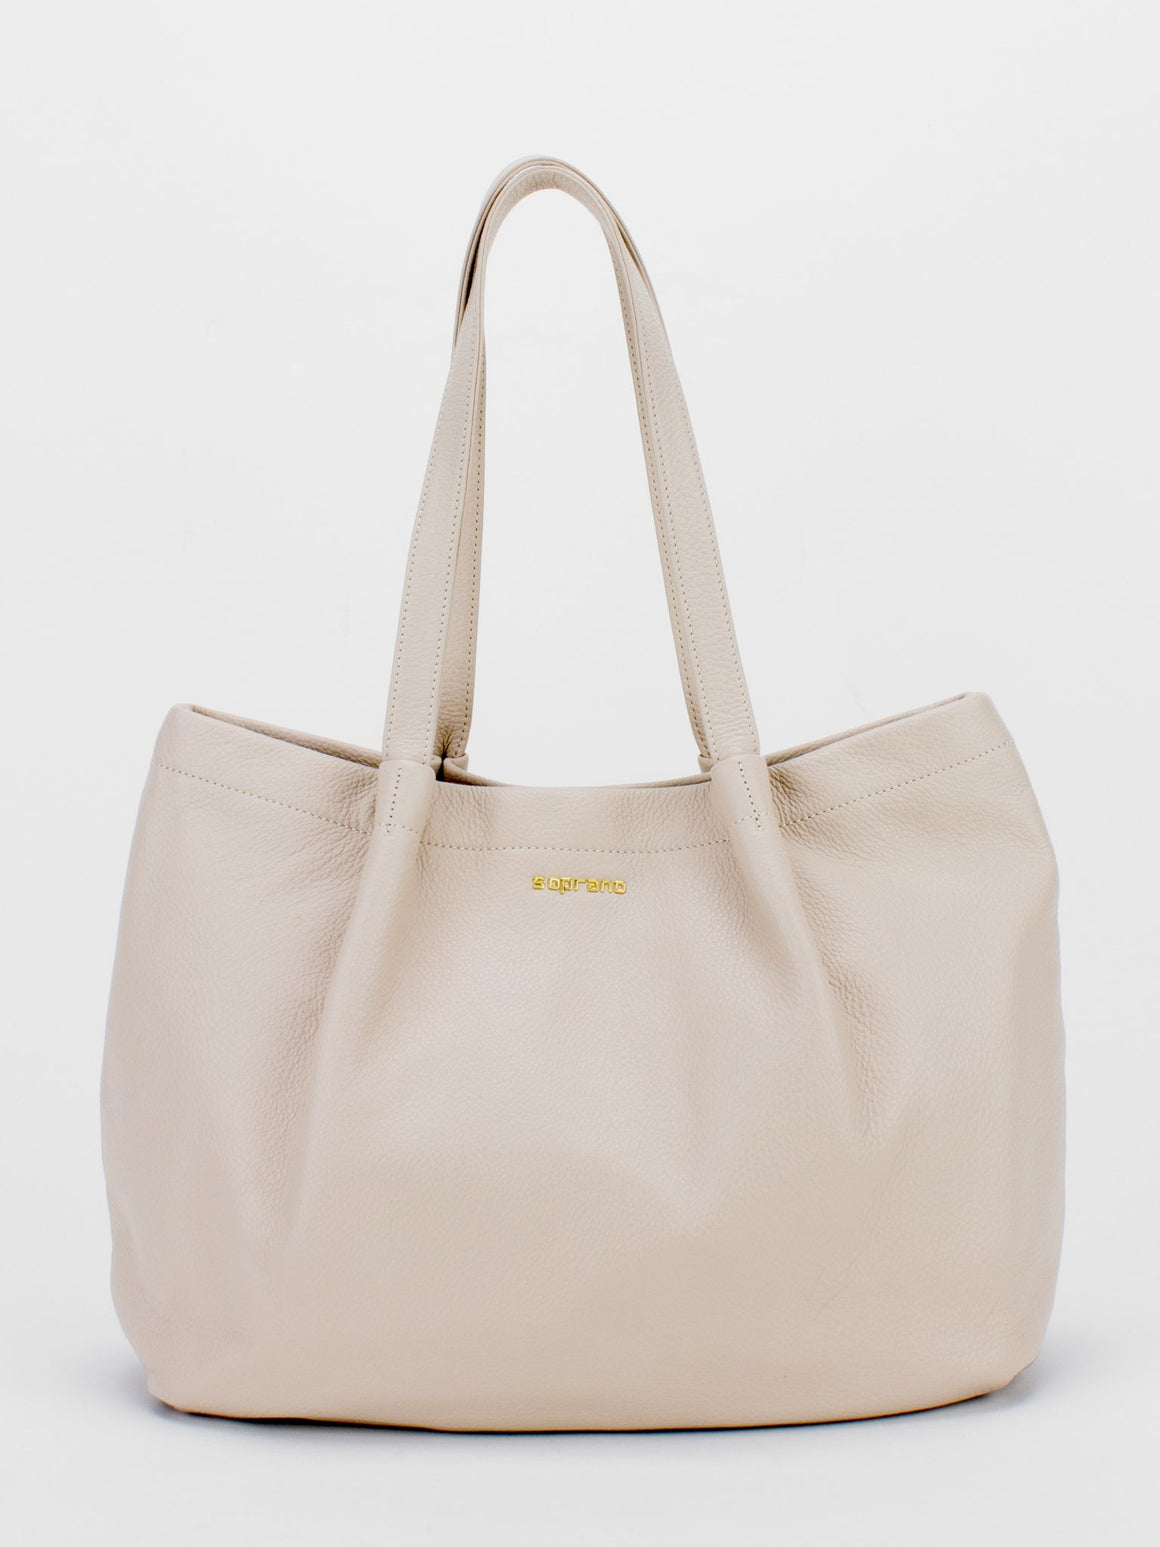 SOPHIE Leather Pleated Tote - Beige